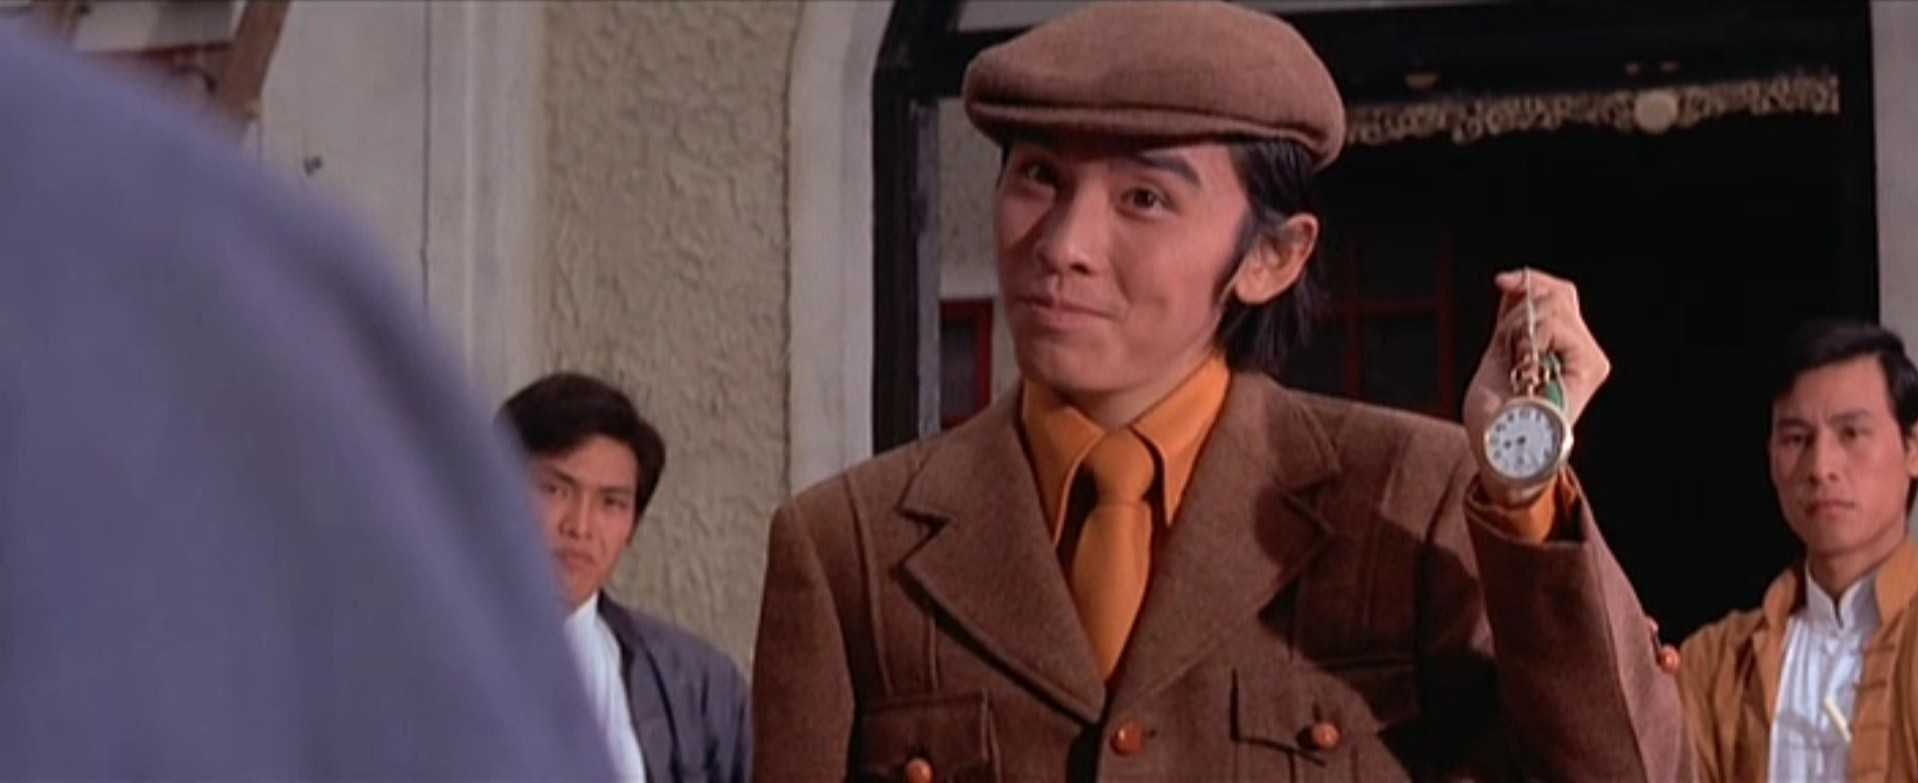 David Chiang in Ma Yong Zhen (1972)